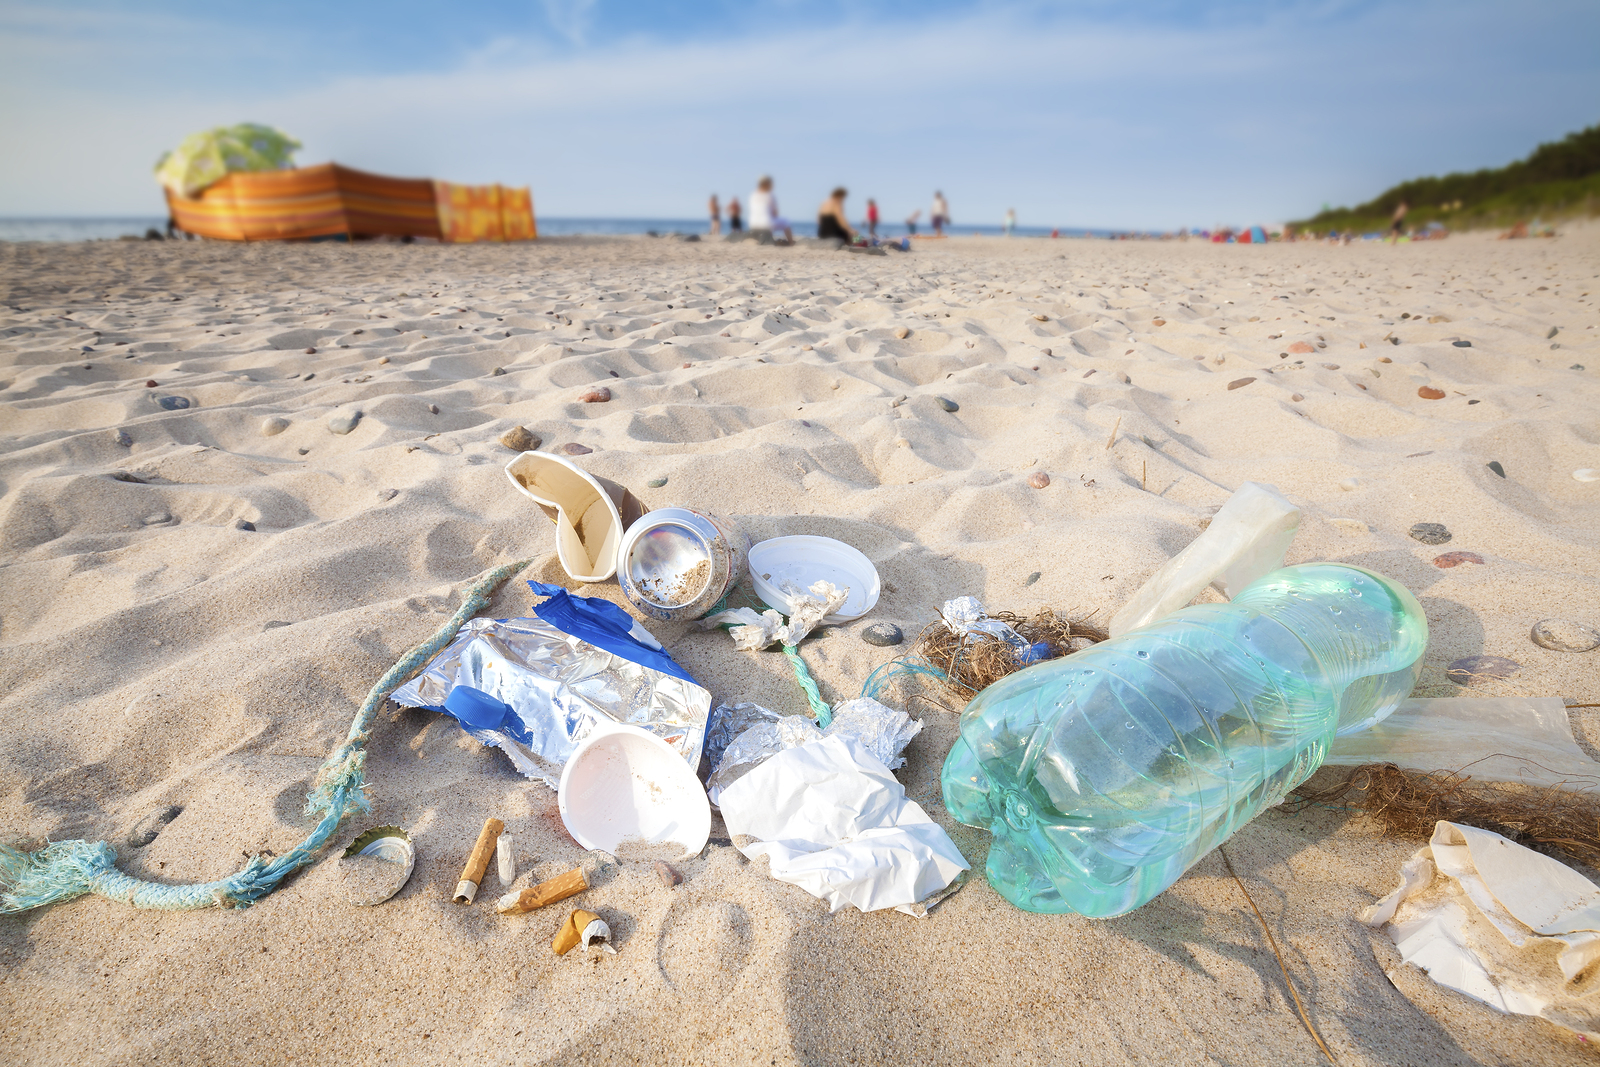 Biodegradable Plastic Is Just As Bad For The Environment